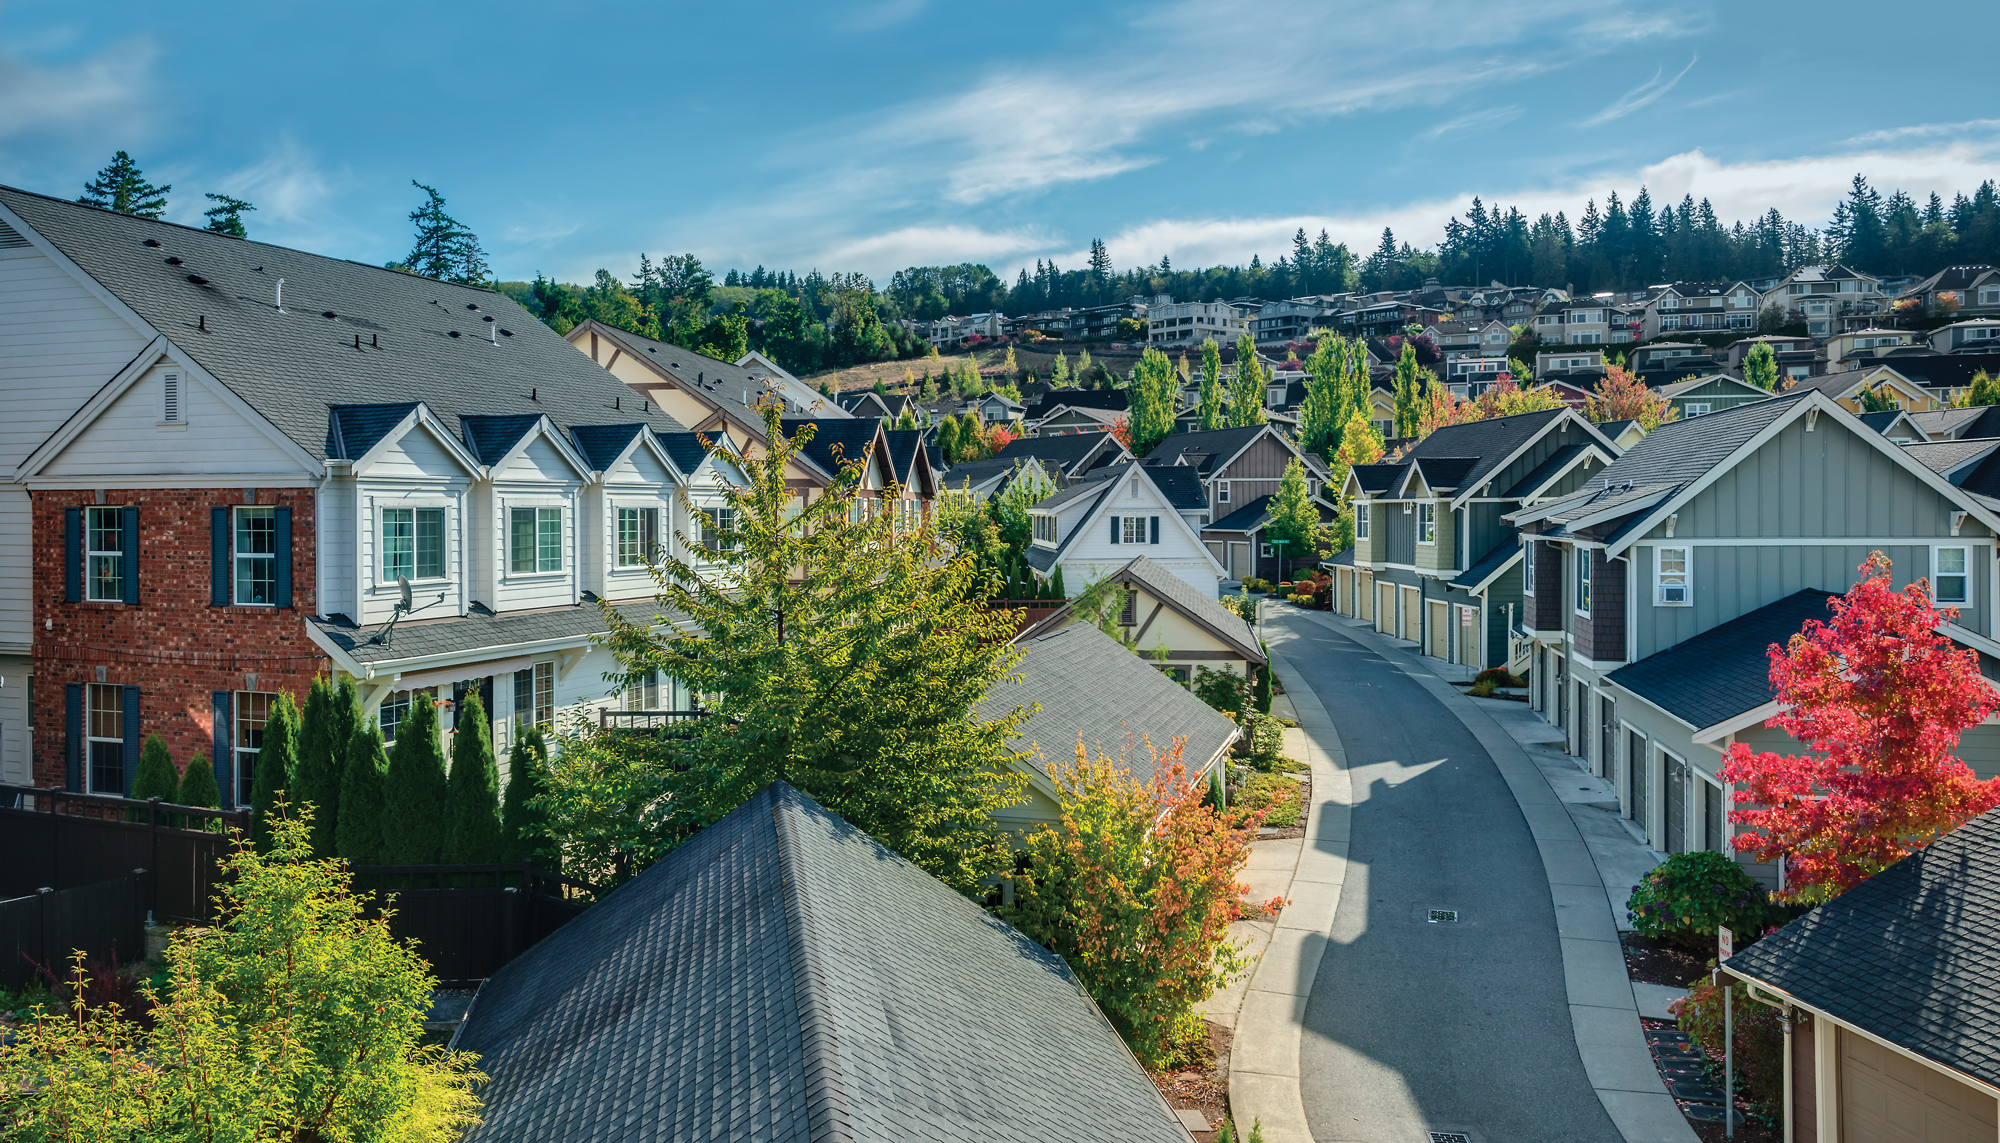 Best of the Burbs: The Next Generation of Seattle Suburbs